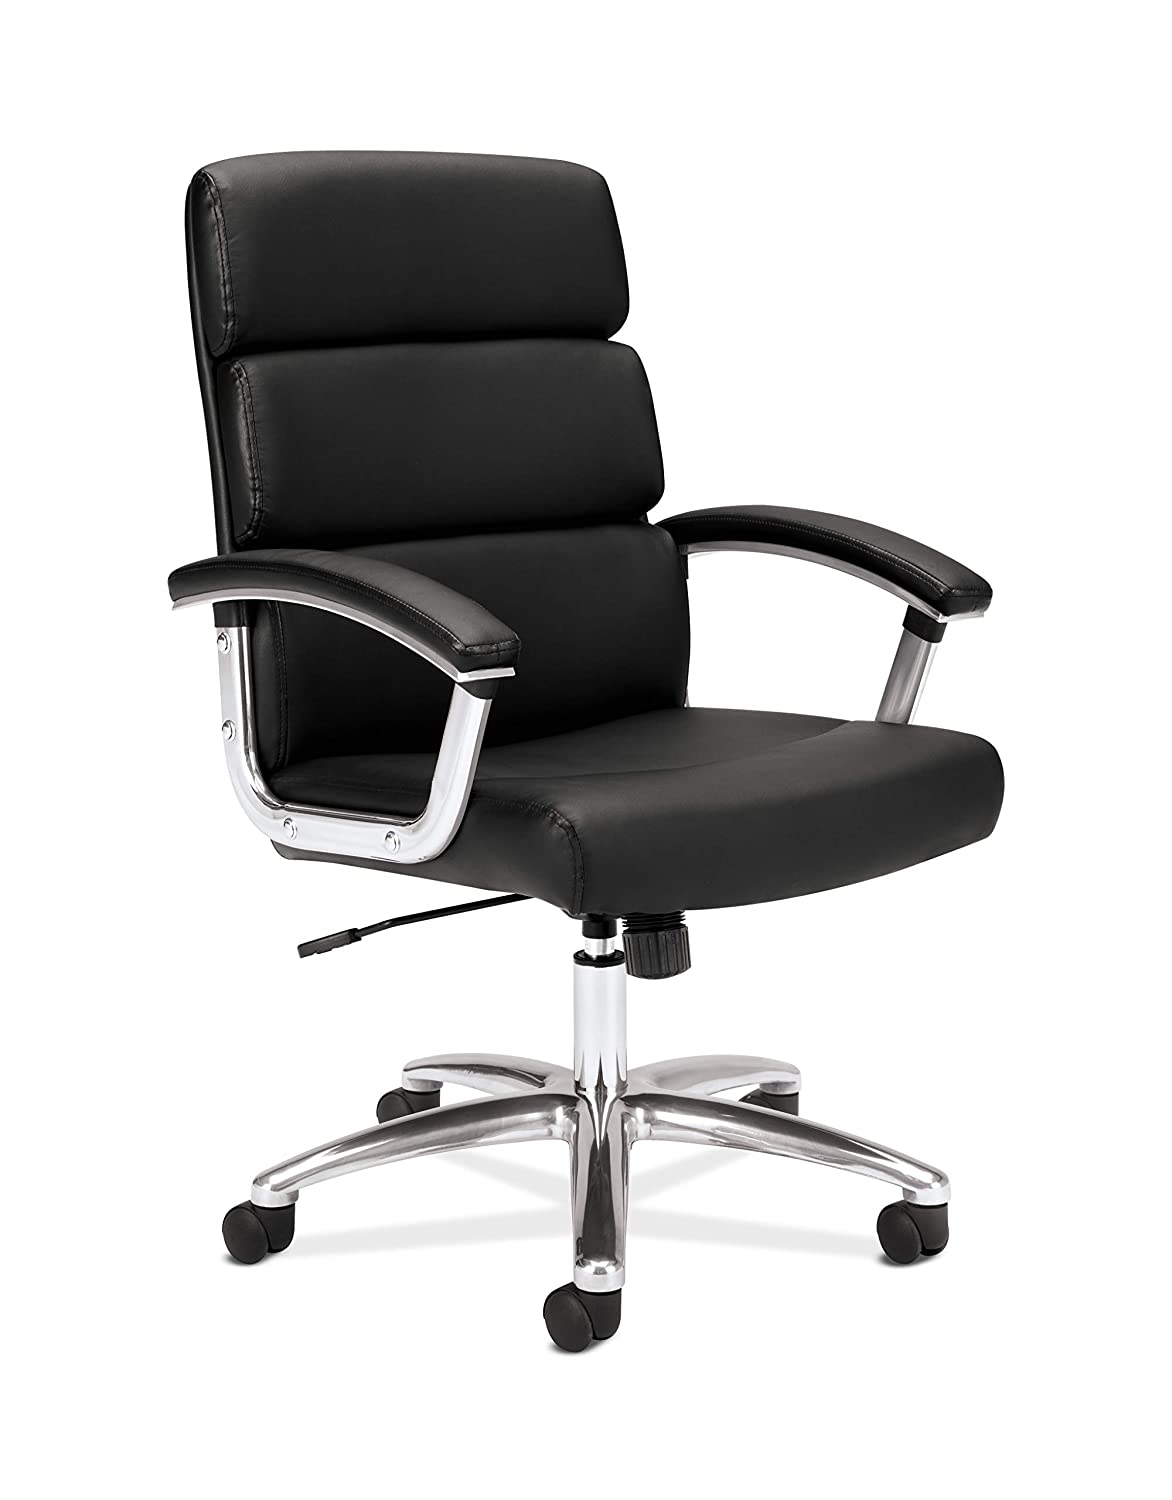 Amazon.com HON Traction Executive Task Chair - Mid Back Leather Computer Chair for Office Desk Black (VL103) Kitchen u0026 Dining  sc 1 st  Amazon.com & Amazon.com: HON Traction Executive Task Chair - Mid Back Leather ...